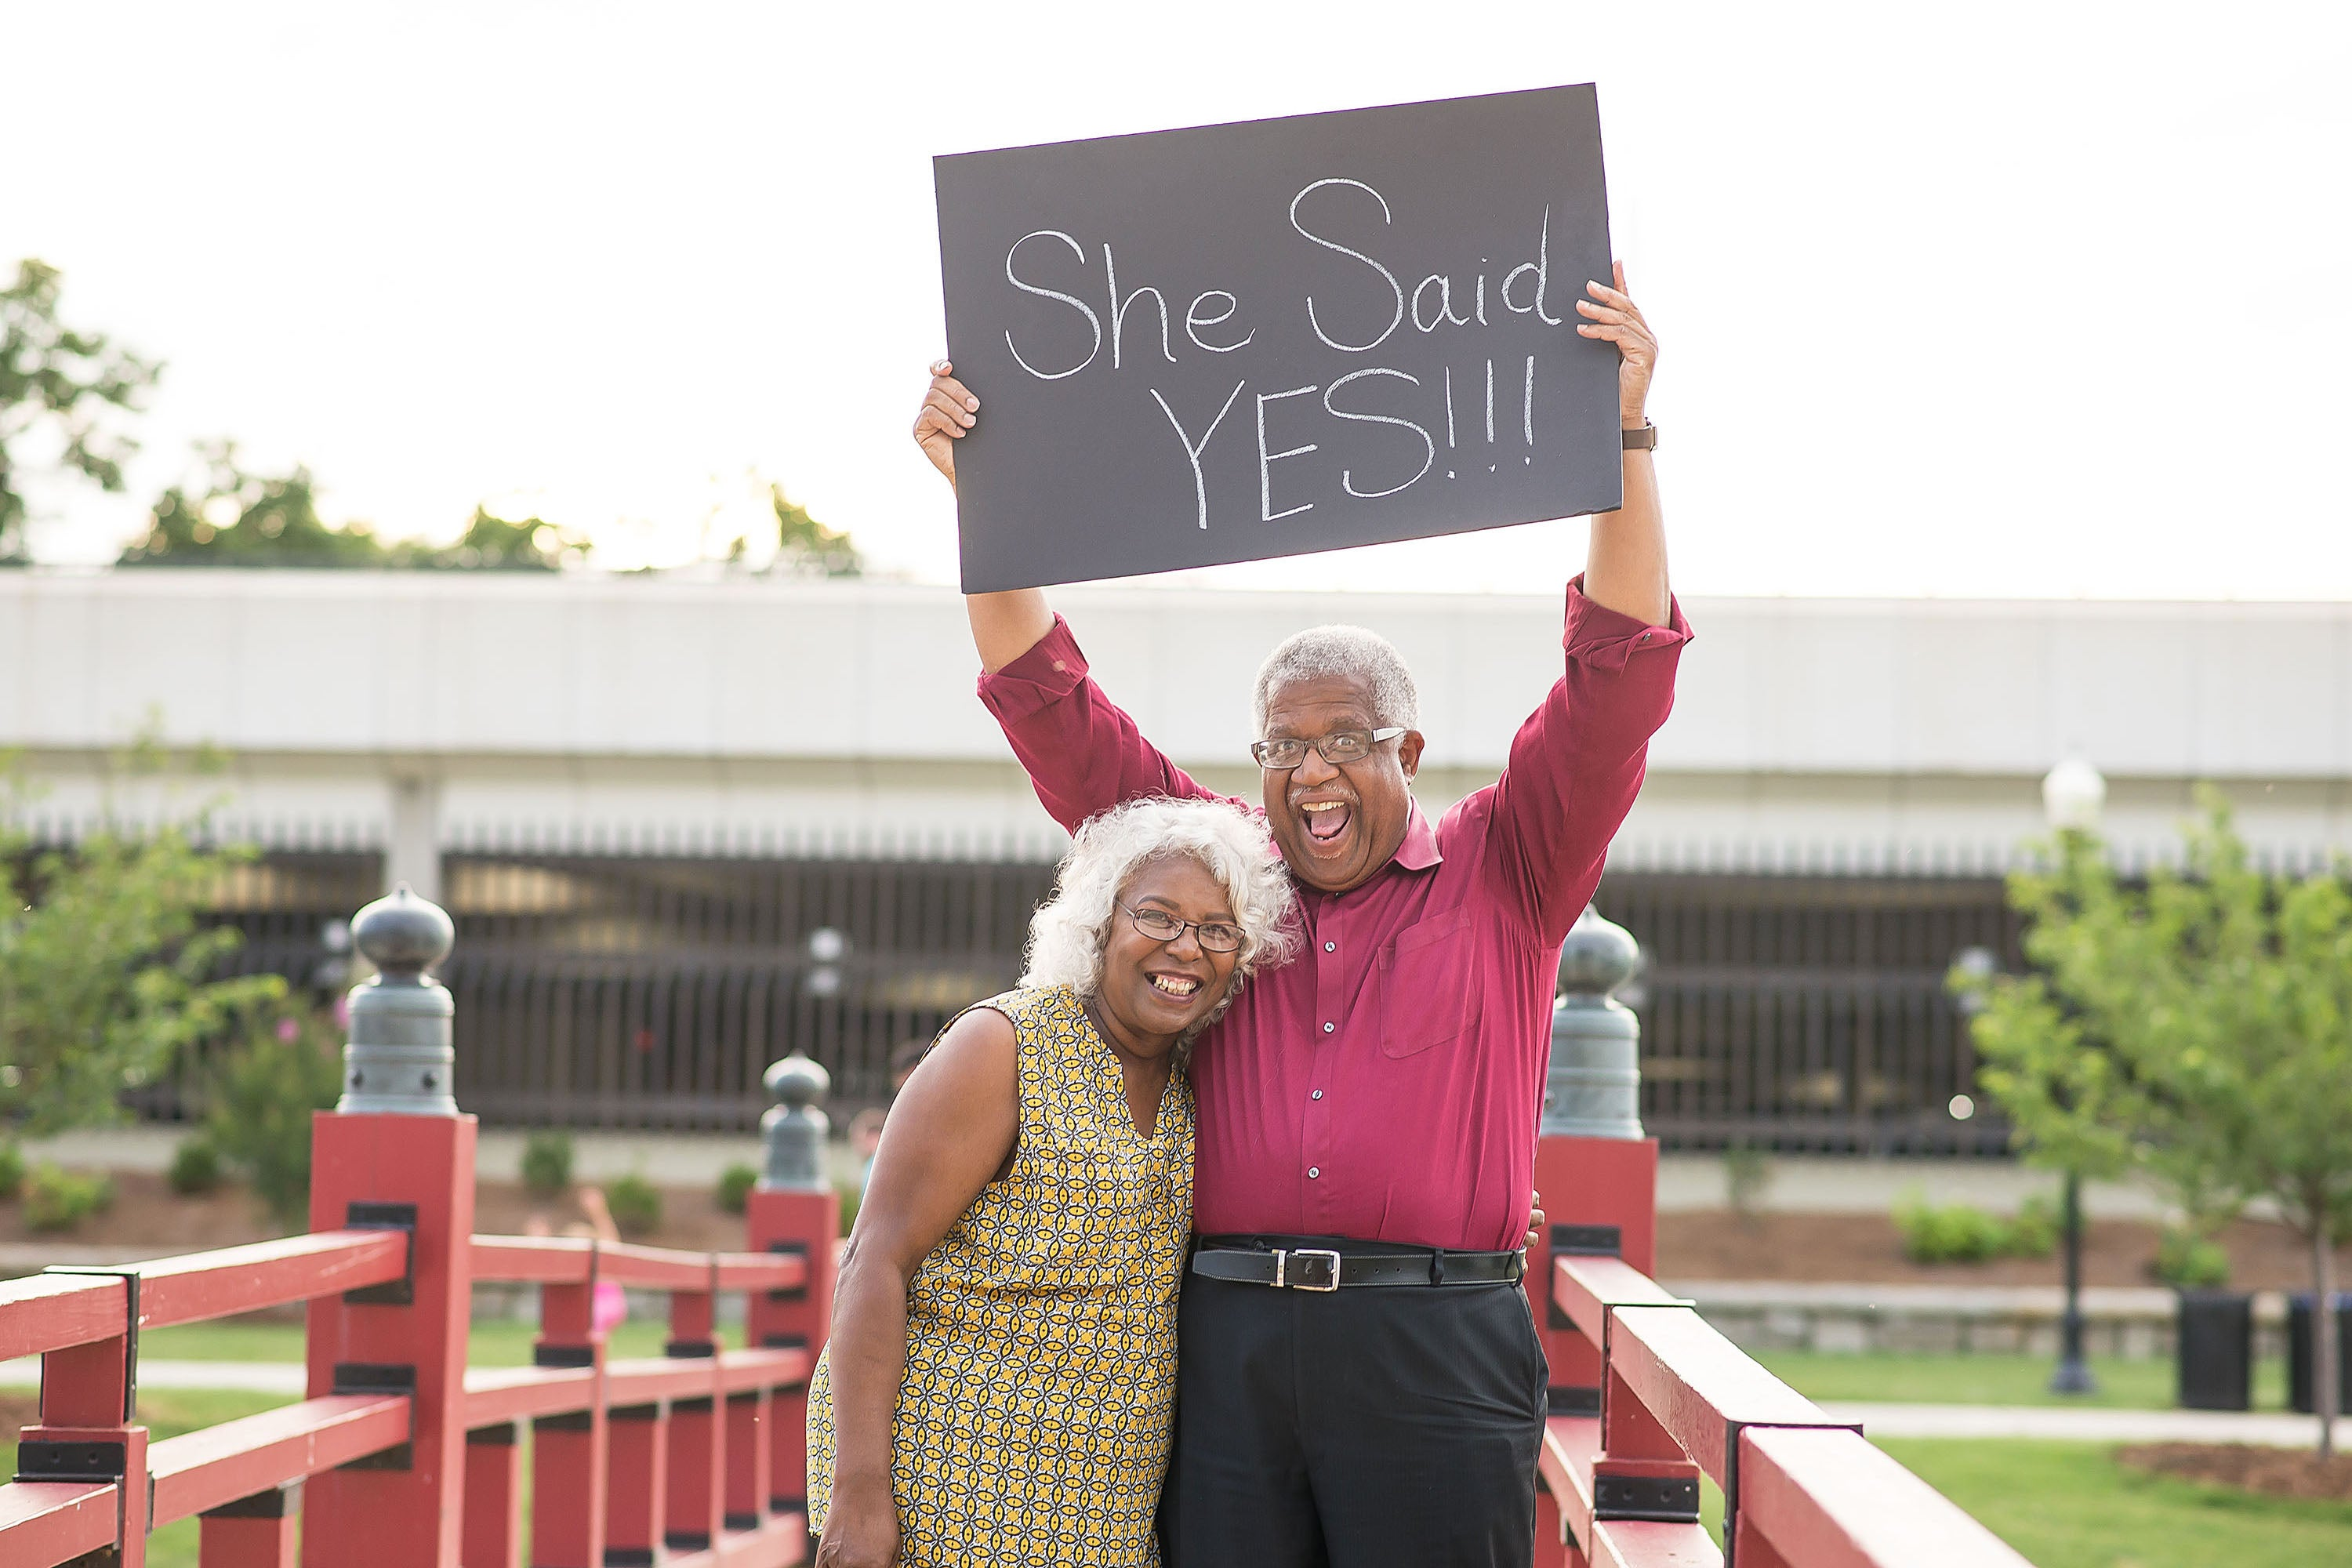 This Elderly Couples Wedding Announcement Went Viral for the Best Reason pictures